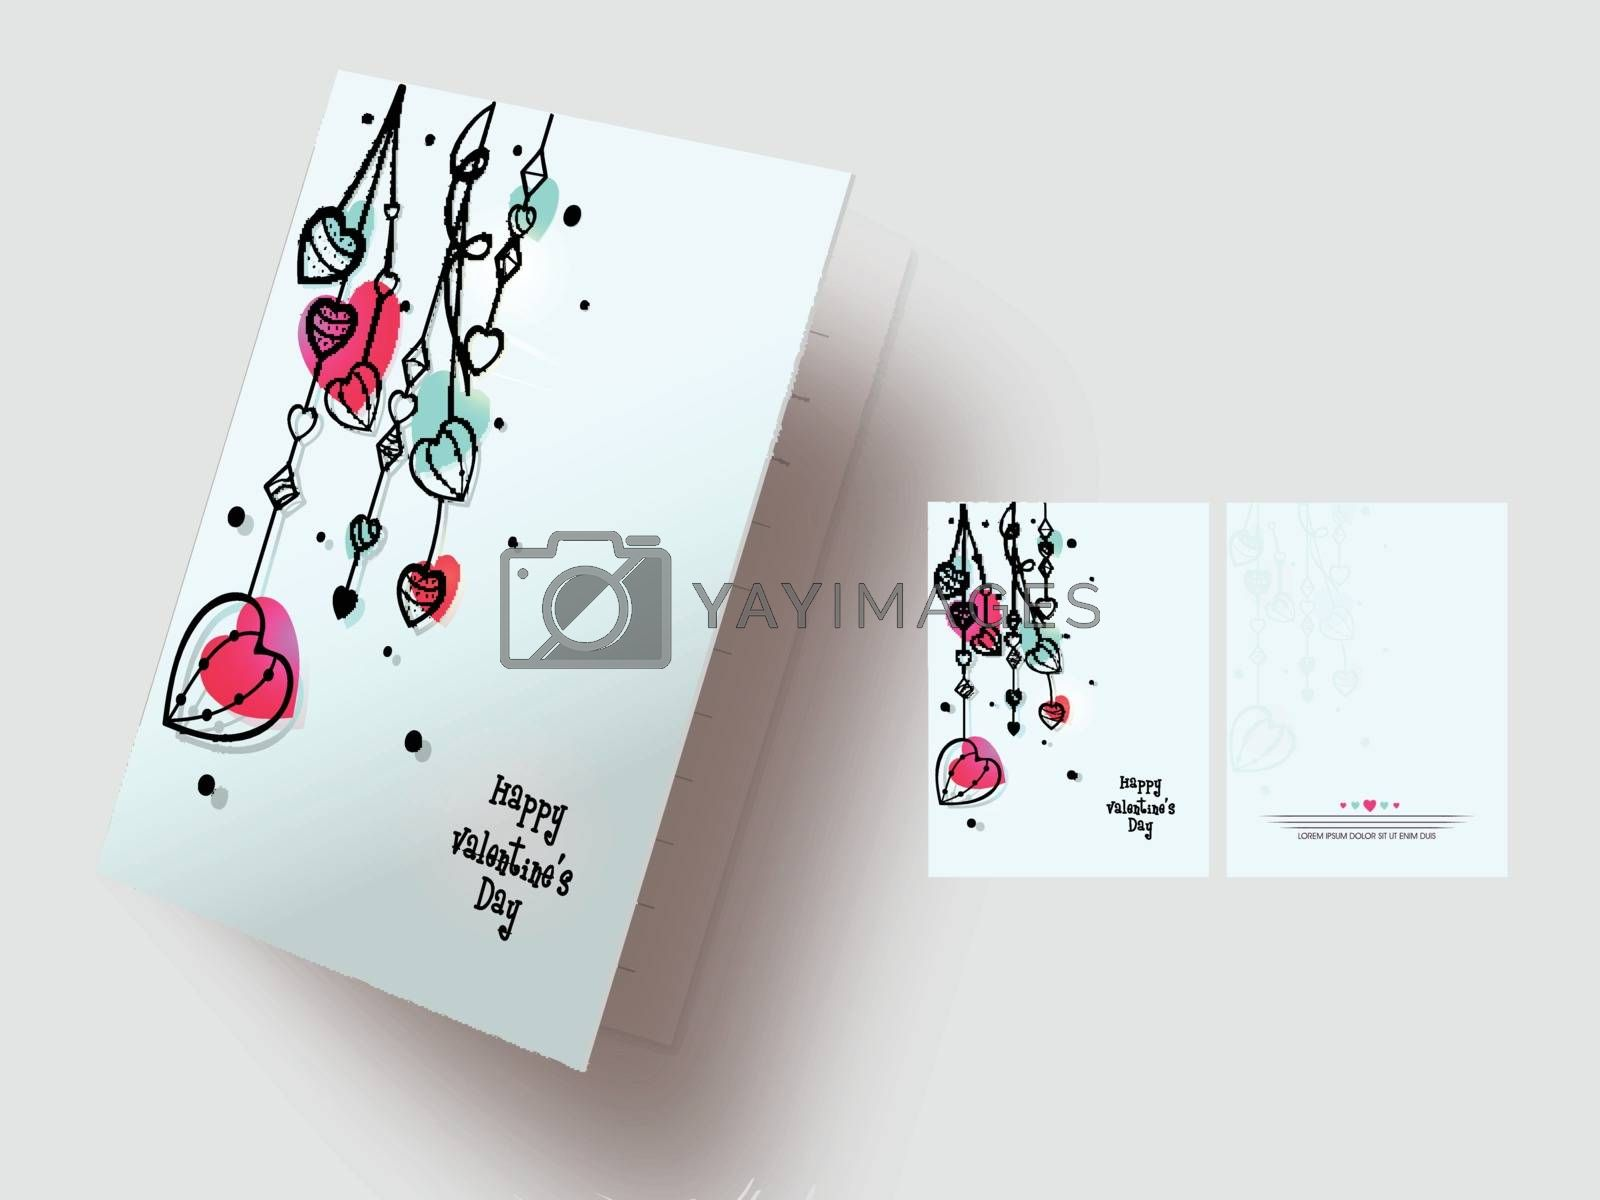 Creative hearts decorated greeting card design for Happy Valentine's Day Celebration.